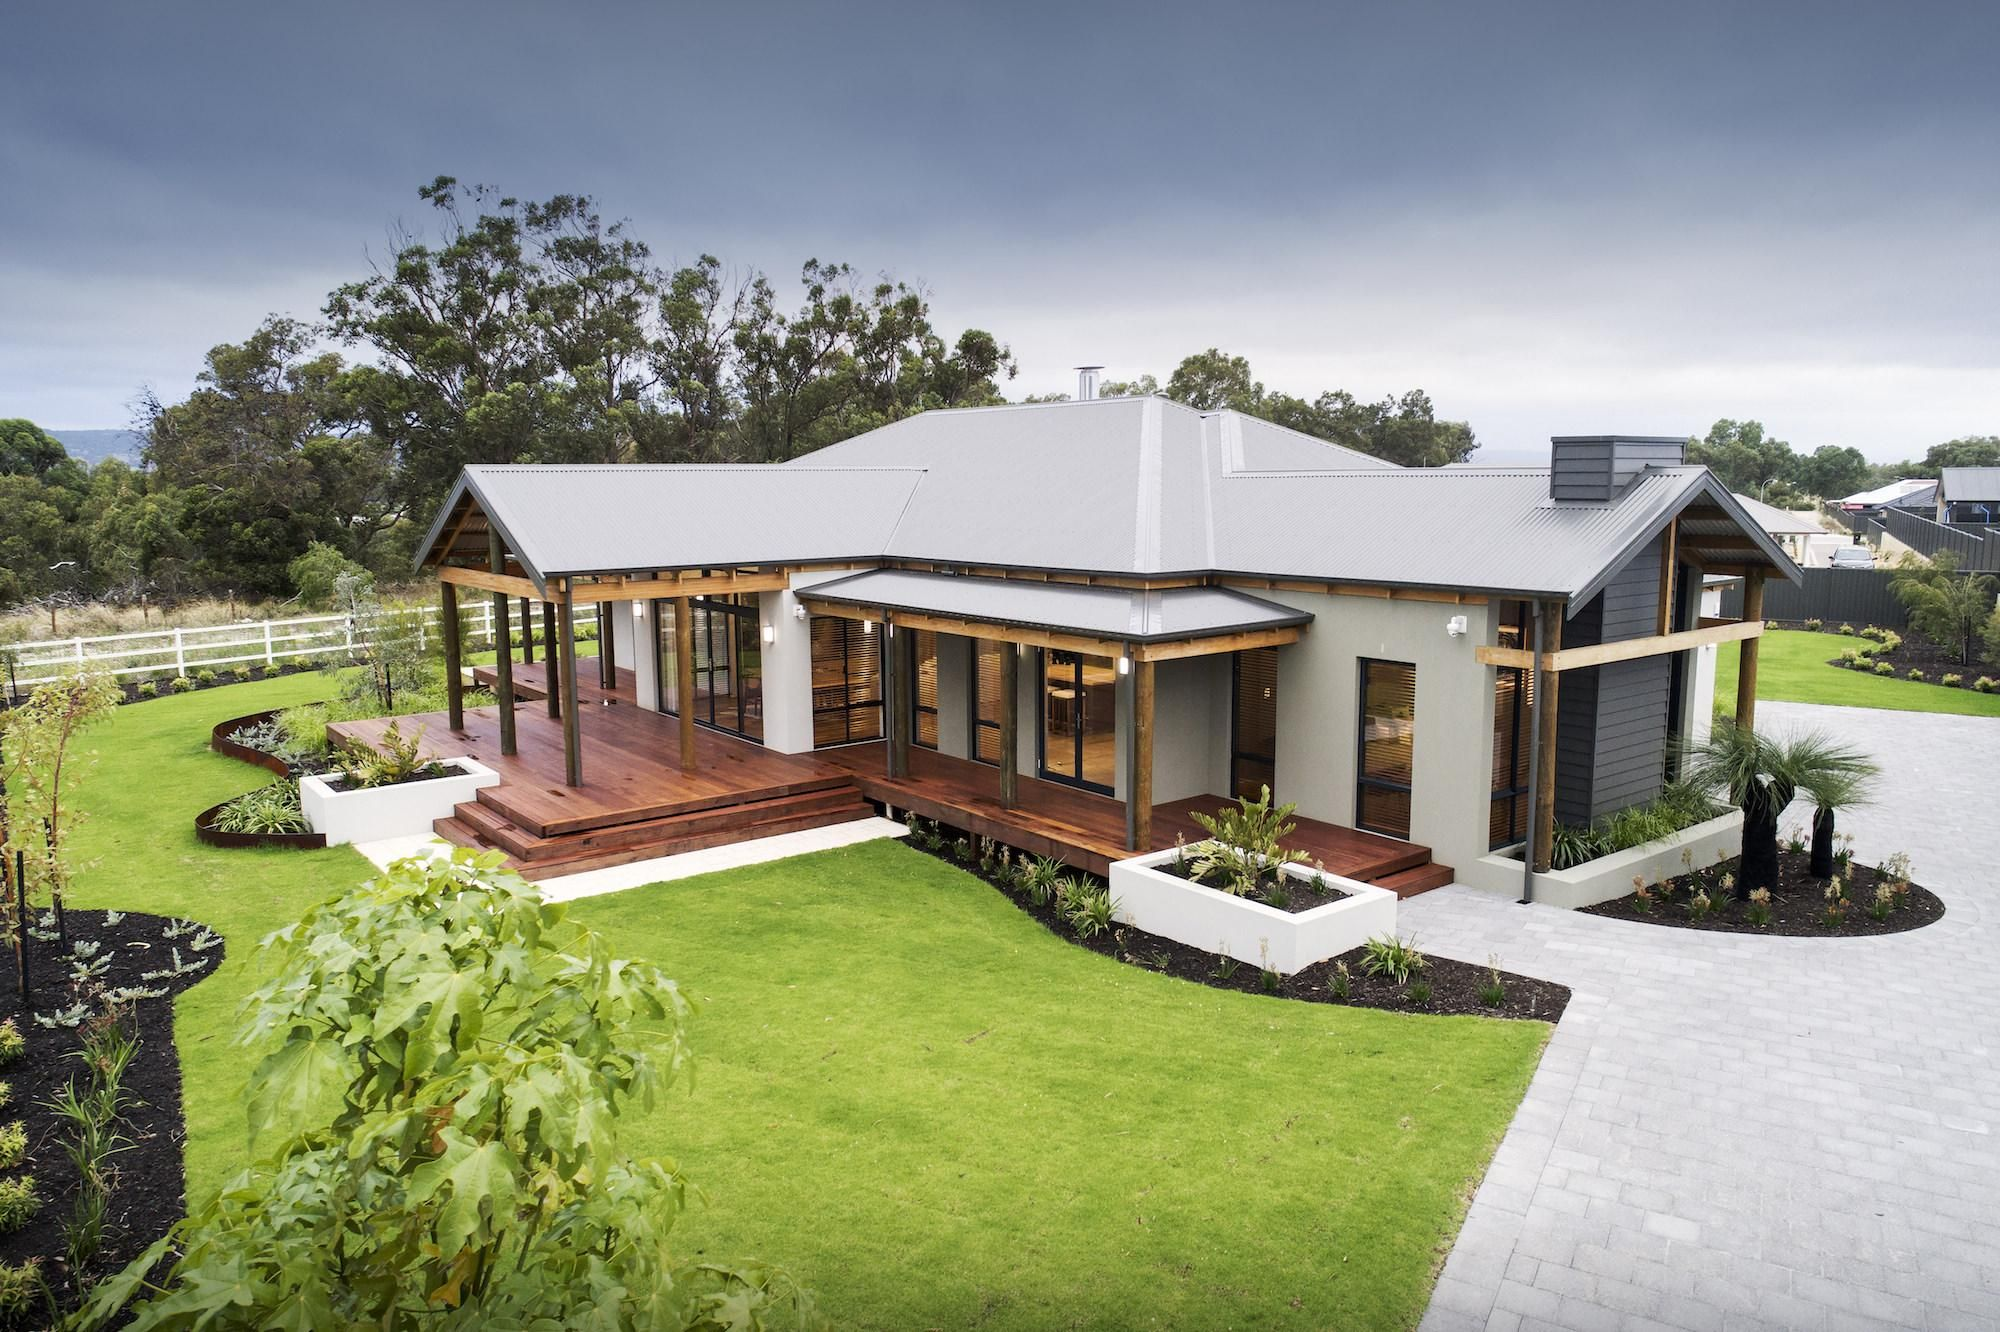 Holiday Home Designs, Builders That Build A Holiday House